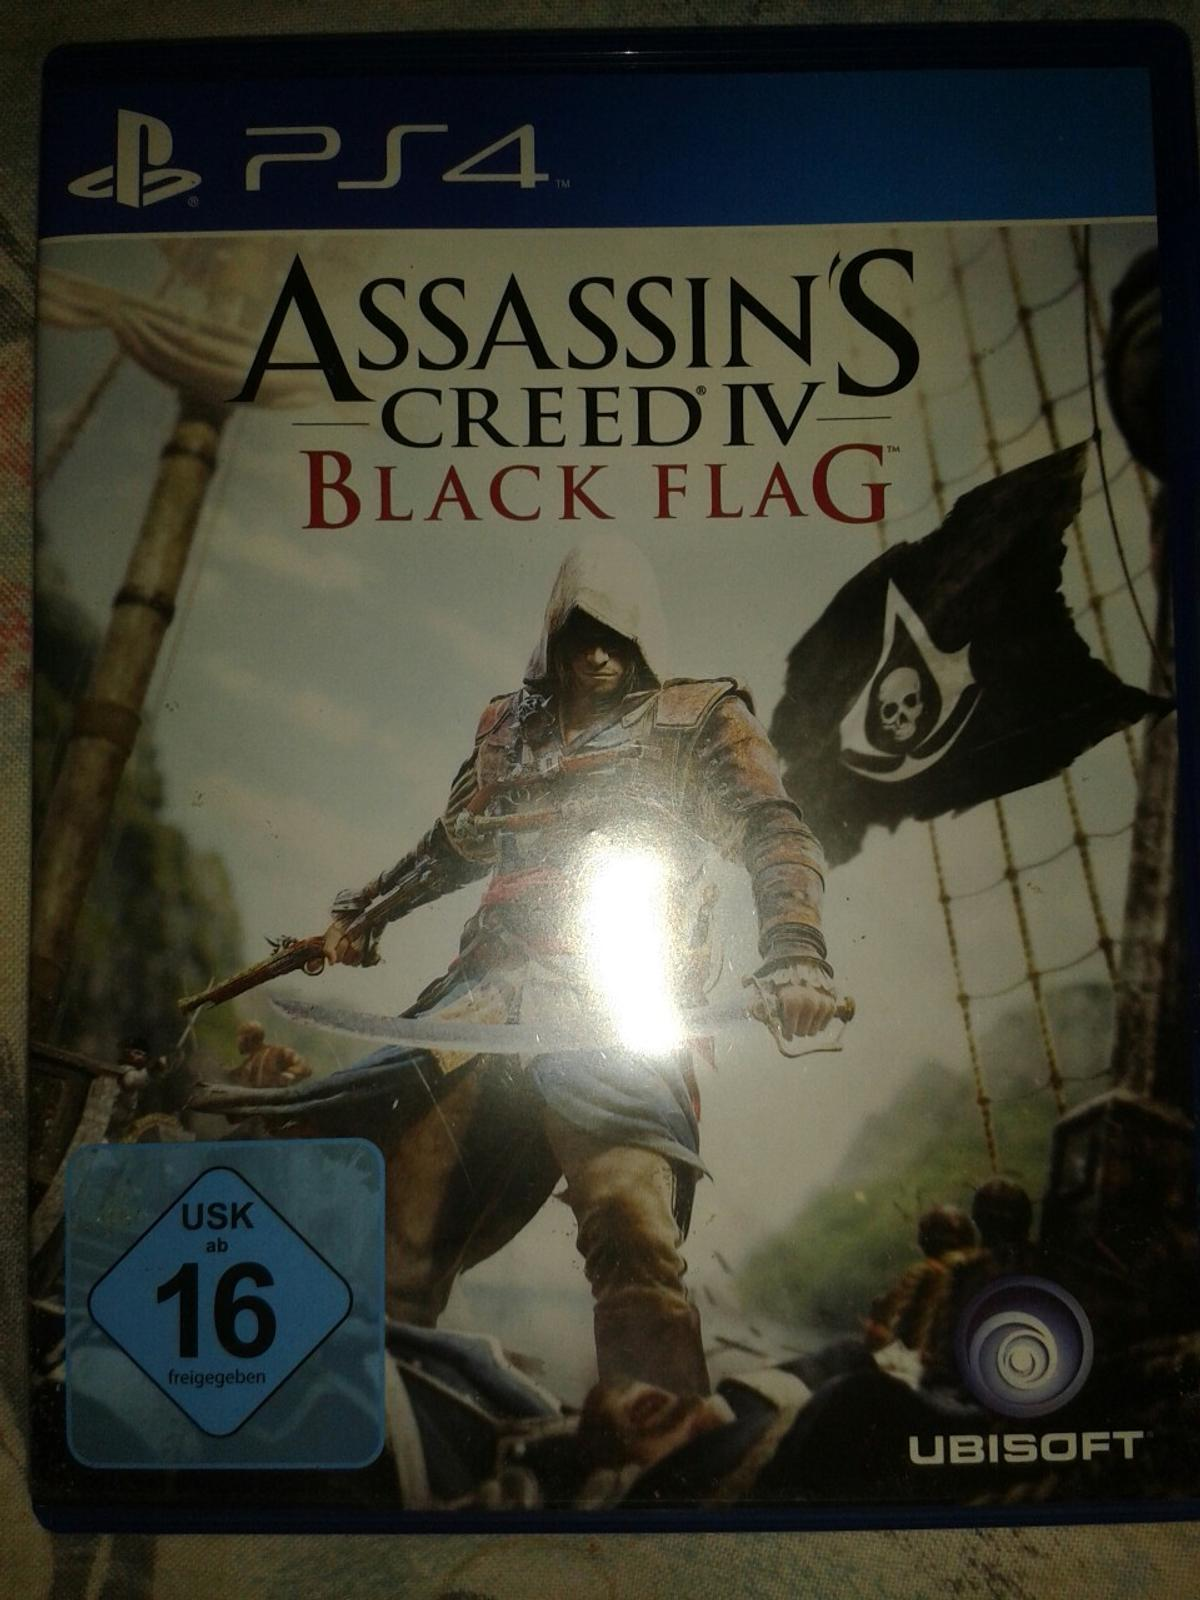 Assassin S Creed Iv Black Flag Ps4 In 12167 Berlin For 20 00